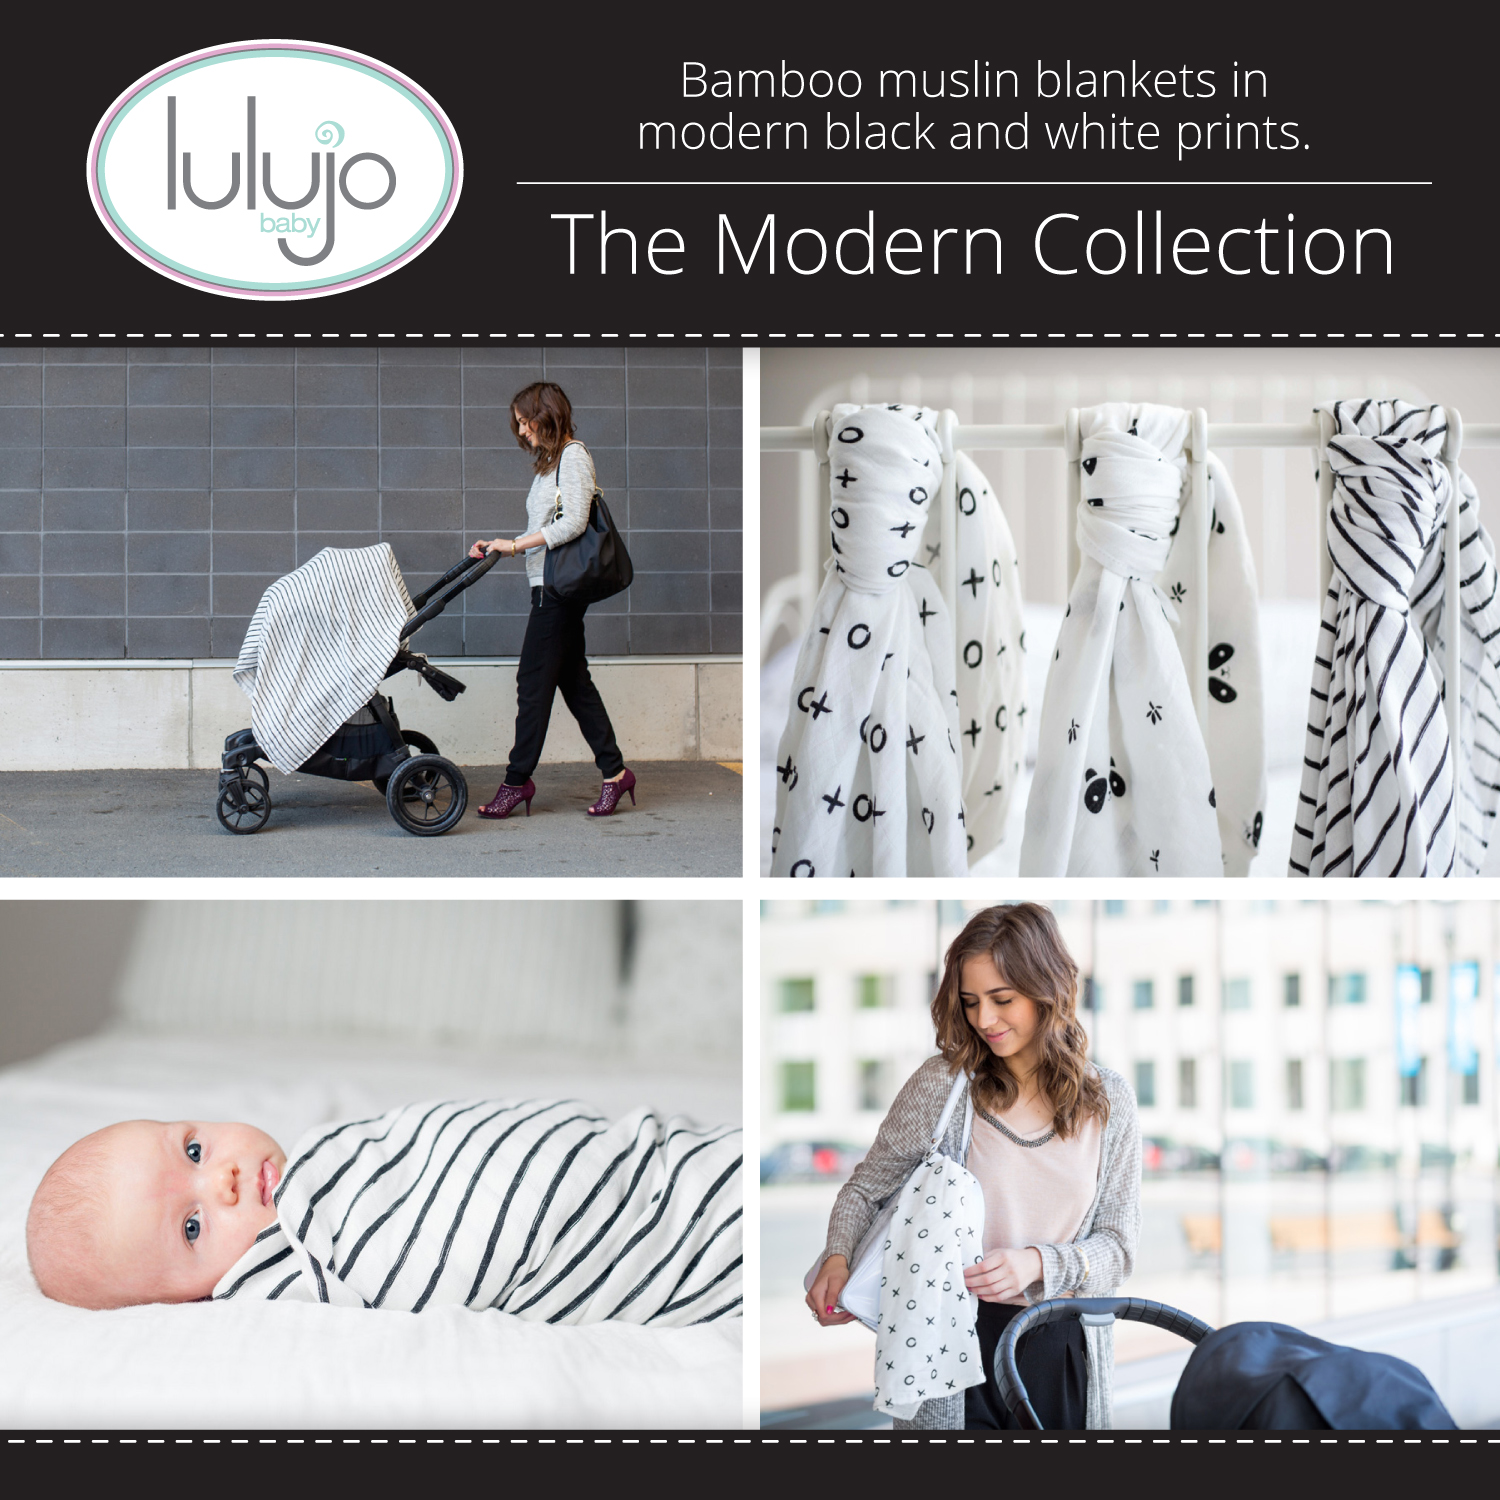 Lulujo Bamboo Modern Collection - Bamboo Muslin Swaddling Blankets